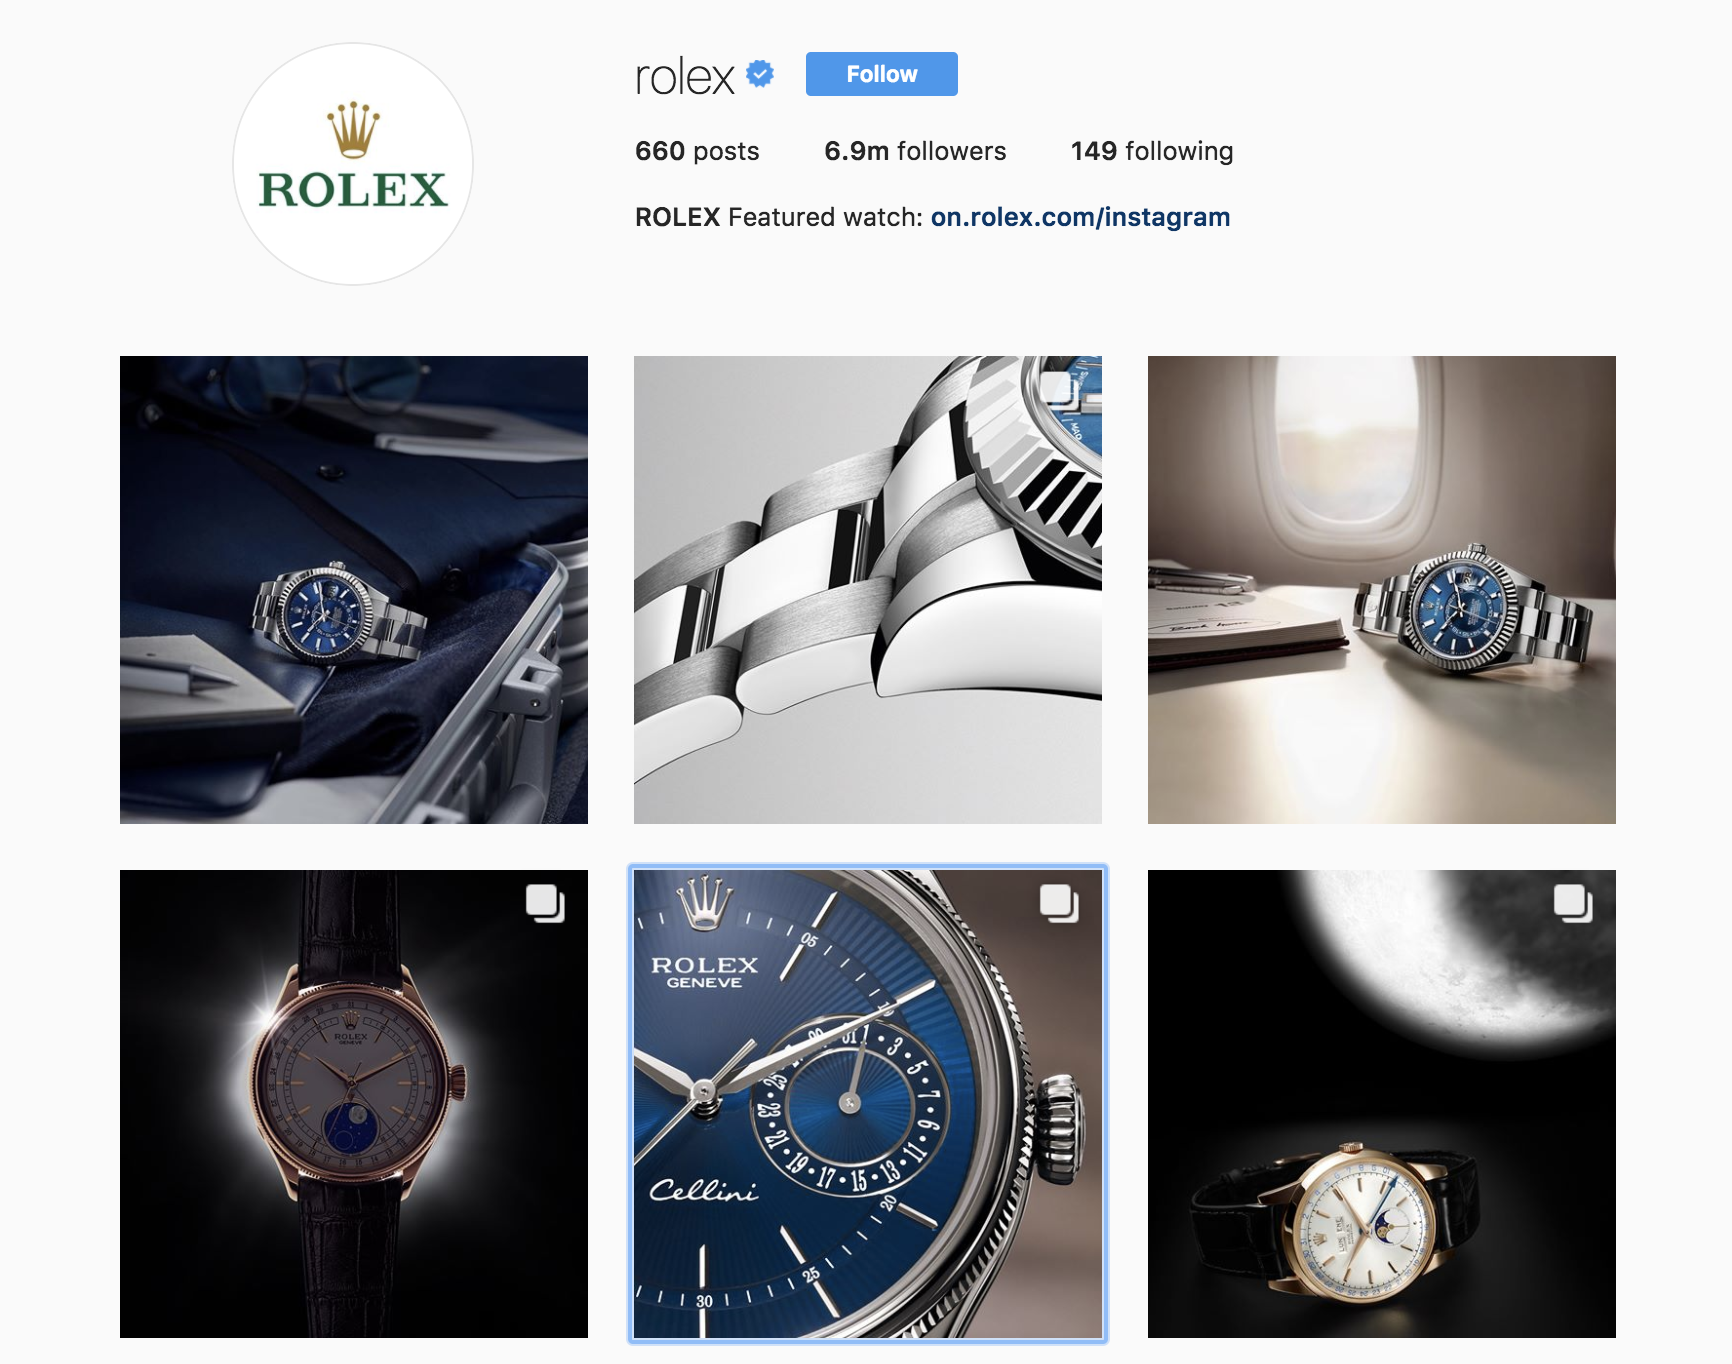 rolex-best-brands-on-instagram